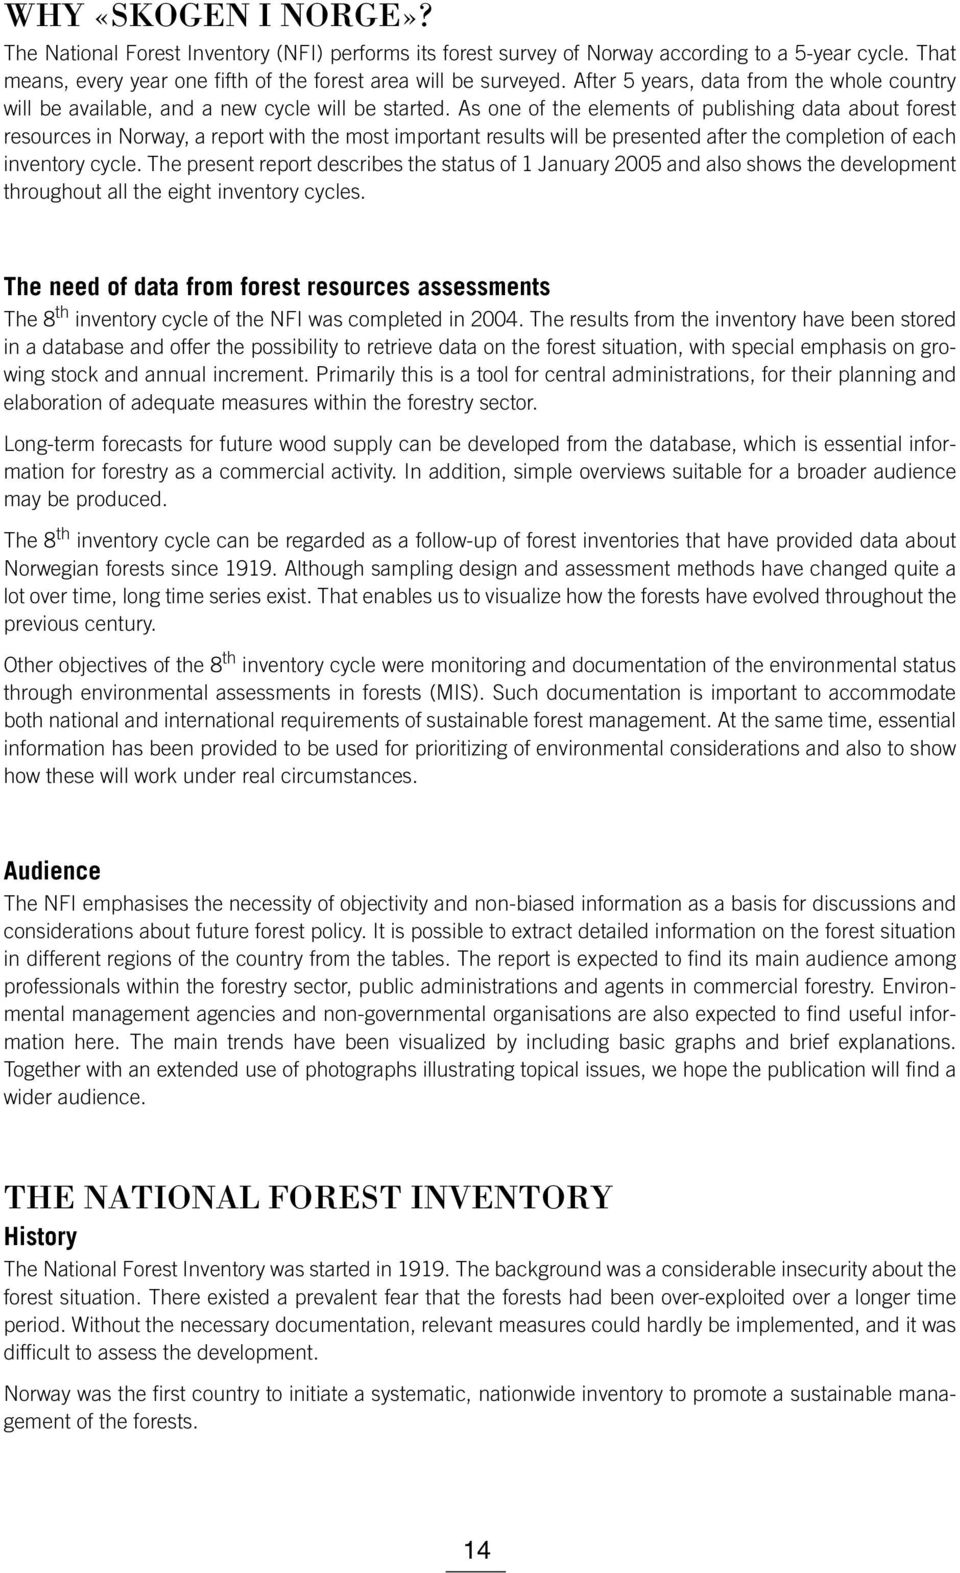 As one of the elements of publishing data about forest resources in Norway, a report with the most important results will be presented after the completion of each inventory cycle.